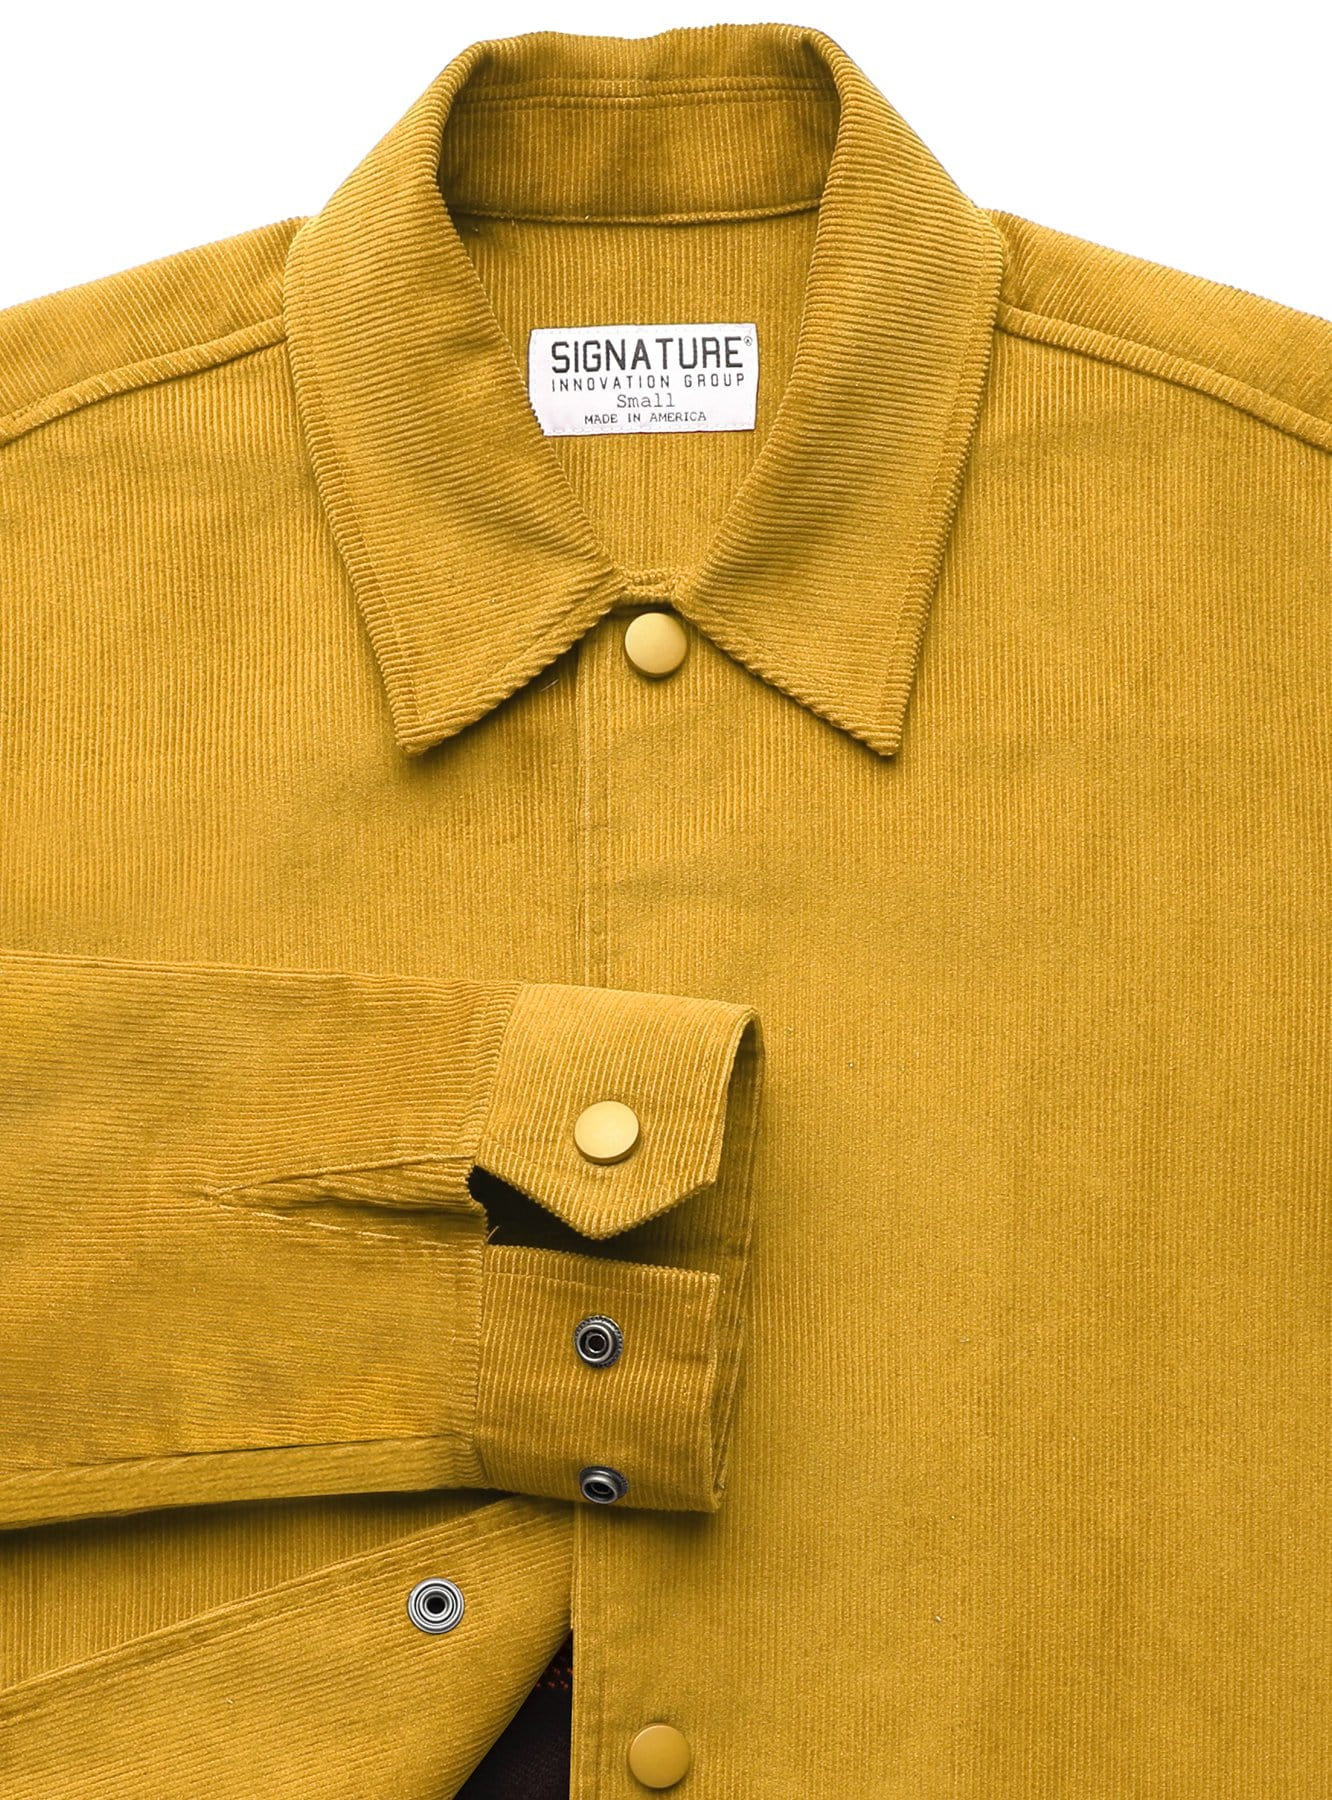 Corduroy Jacket in Mustard with Liner